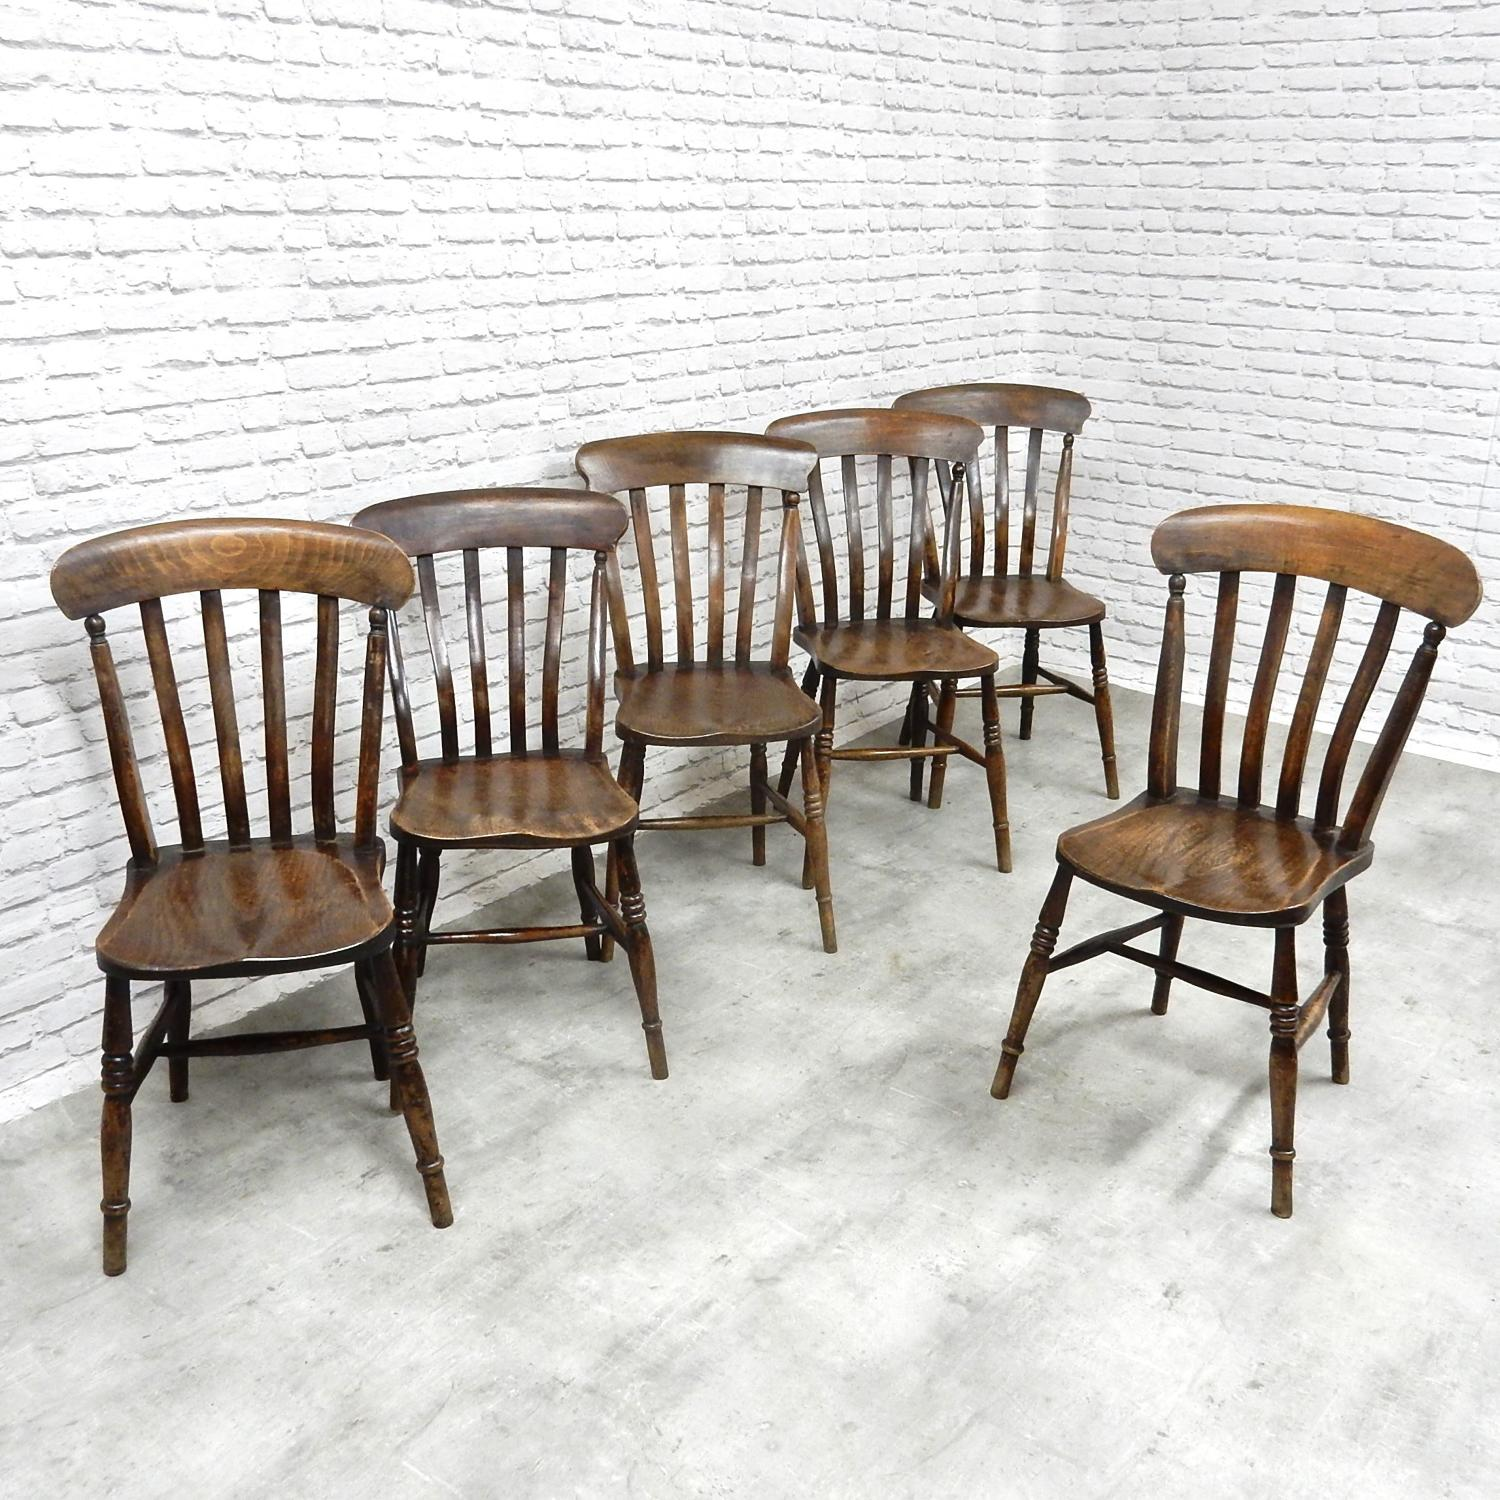 Set 6 Farmhouse Kitchen Chairs